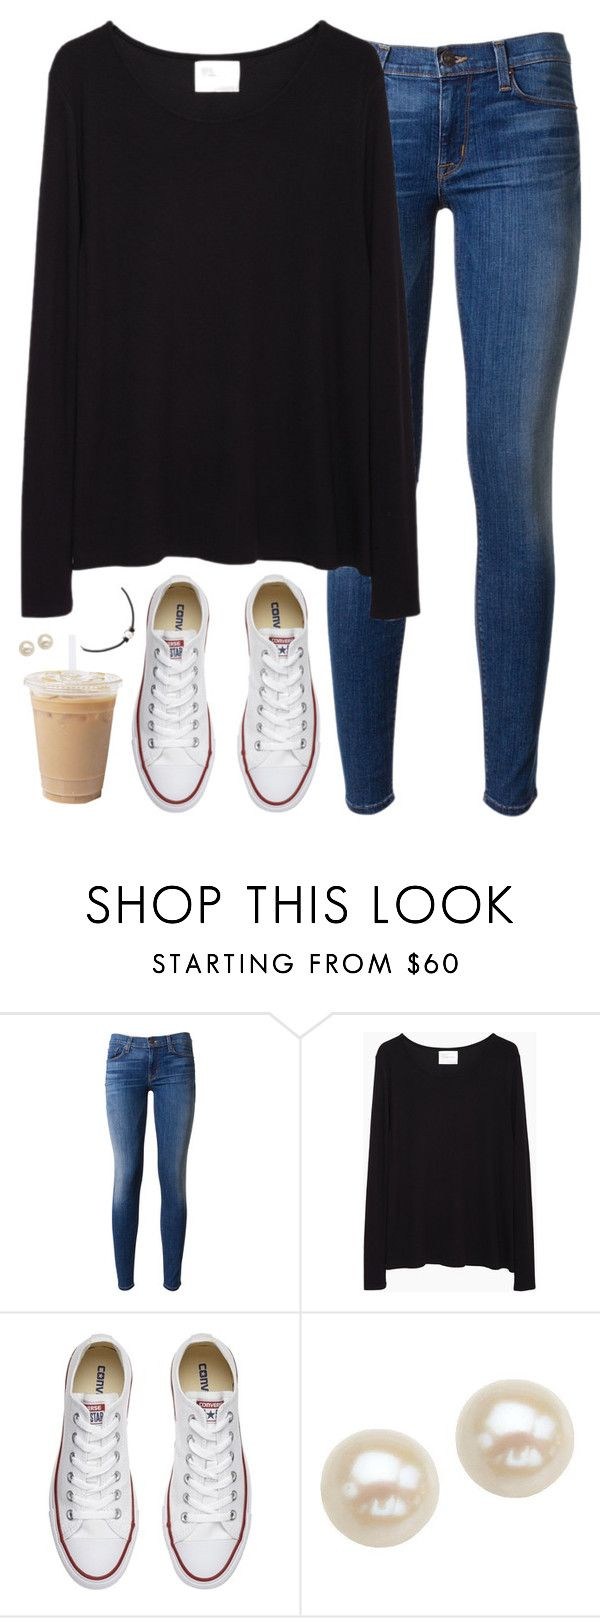 """""""Black and converse"""" by aweaver-2 on Polyvore featuring Hudson, La Garçonne Moderne, Converse and Honora"""